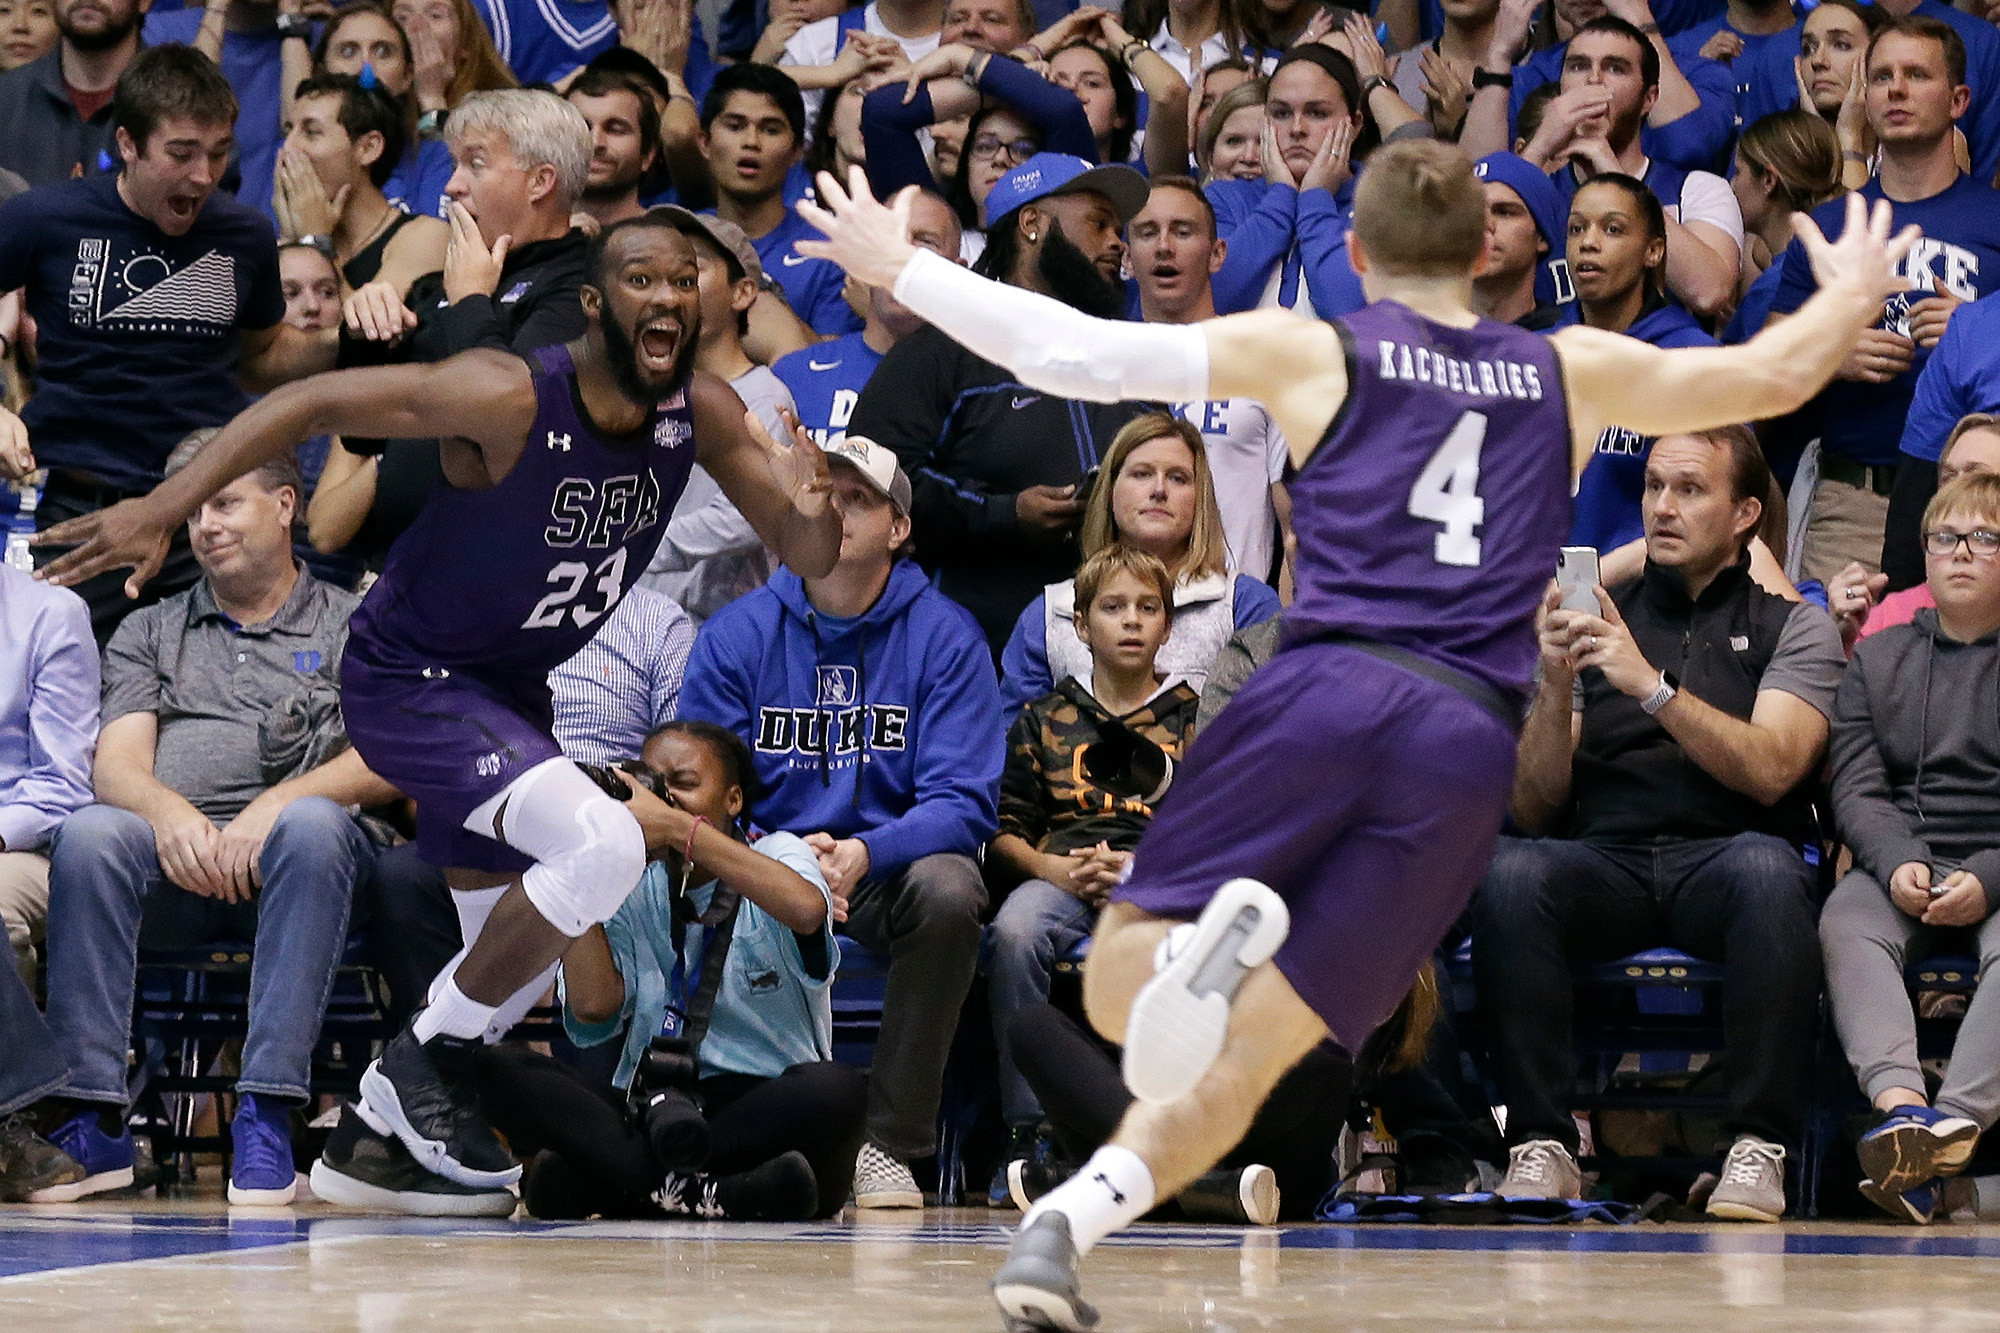 Leading-Stephen-F. Austin-to-historic-upset-over-No.-1-Duke,-then-buzzer-beating-hero-Nate-Bain-gets-surprise-of-a-lifetime